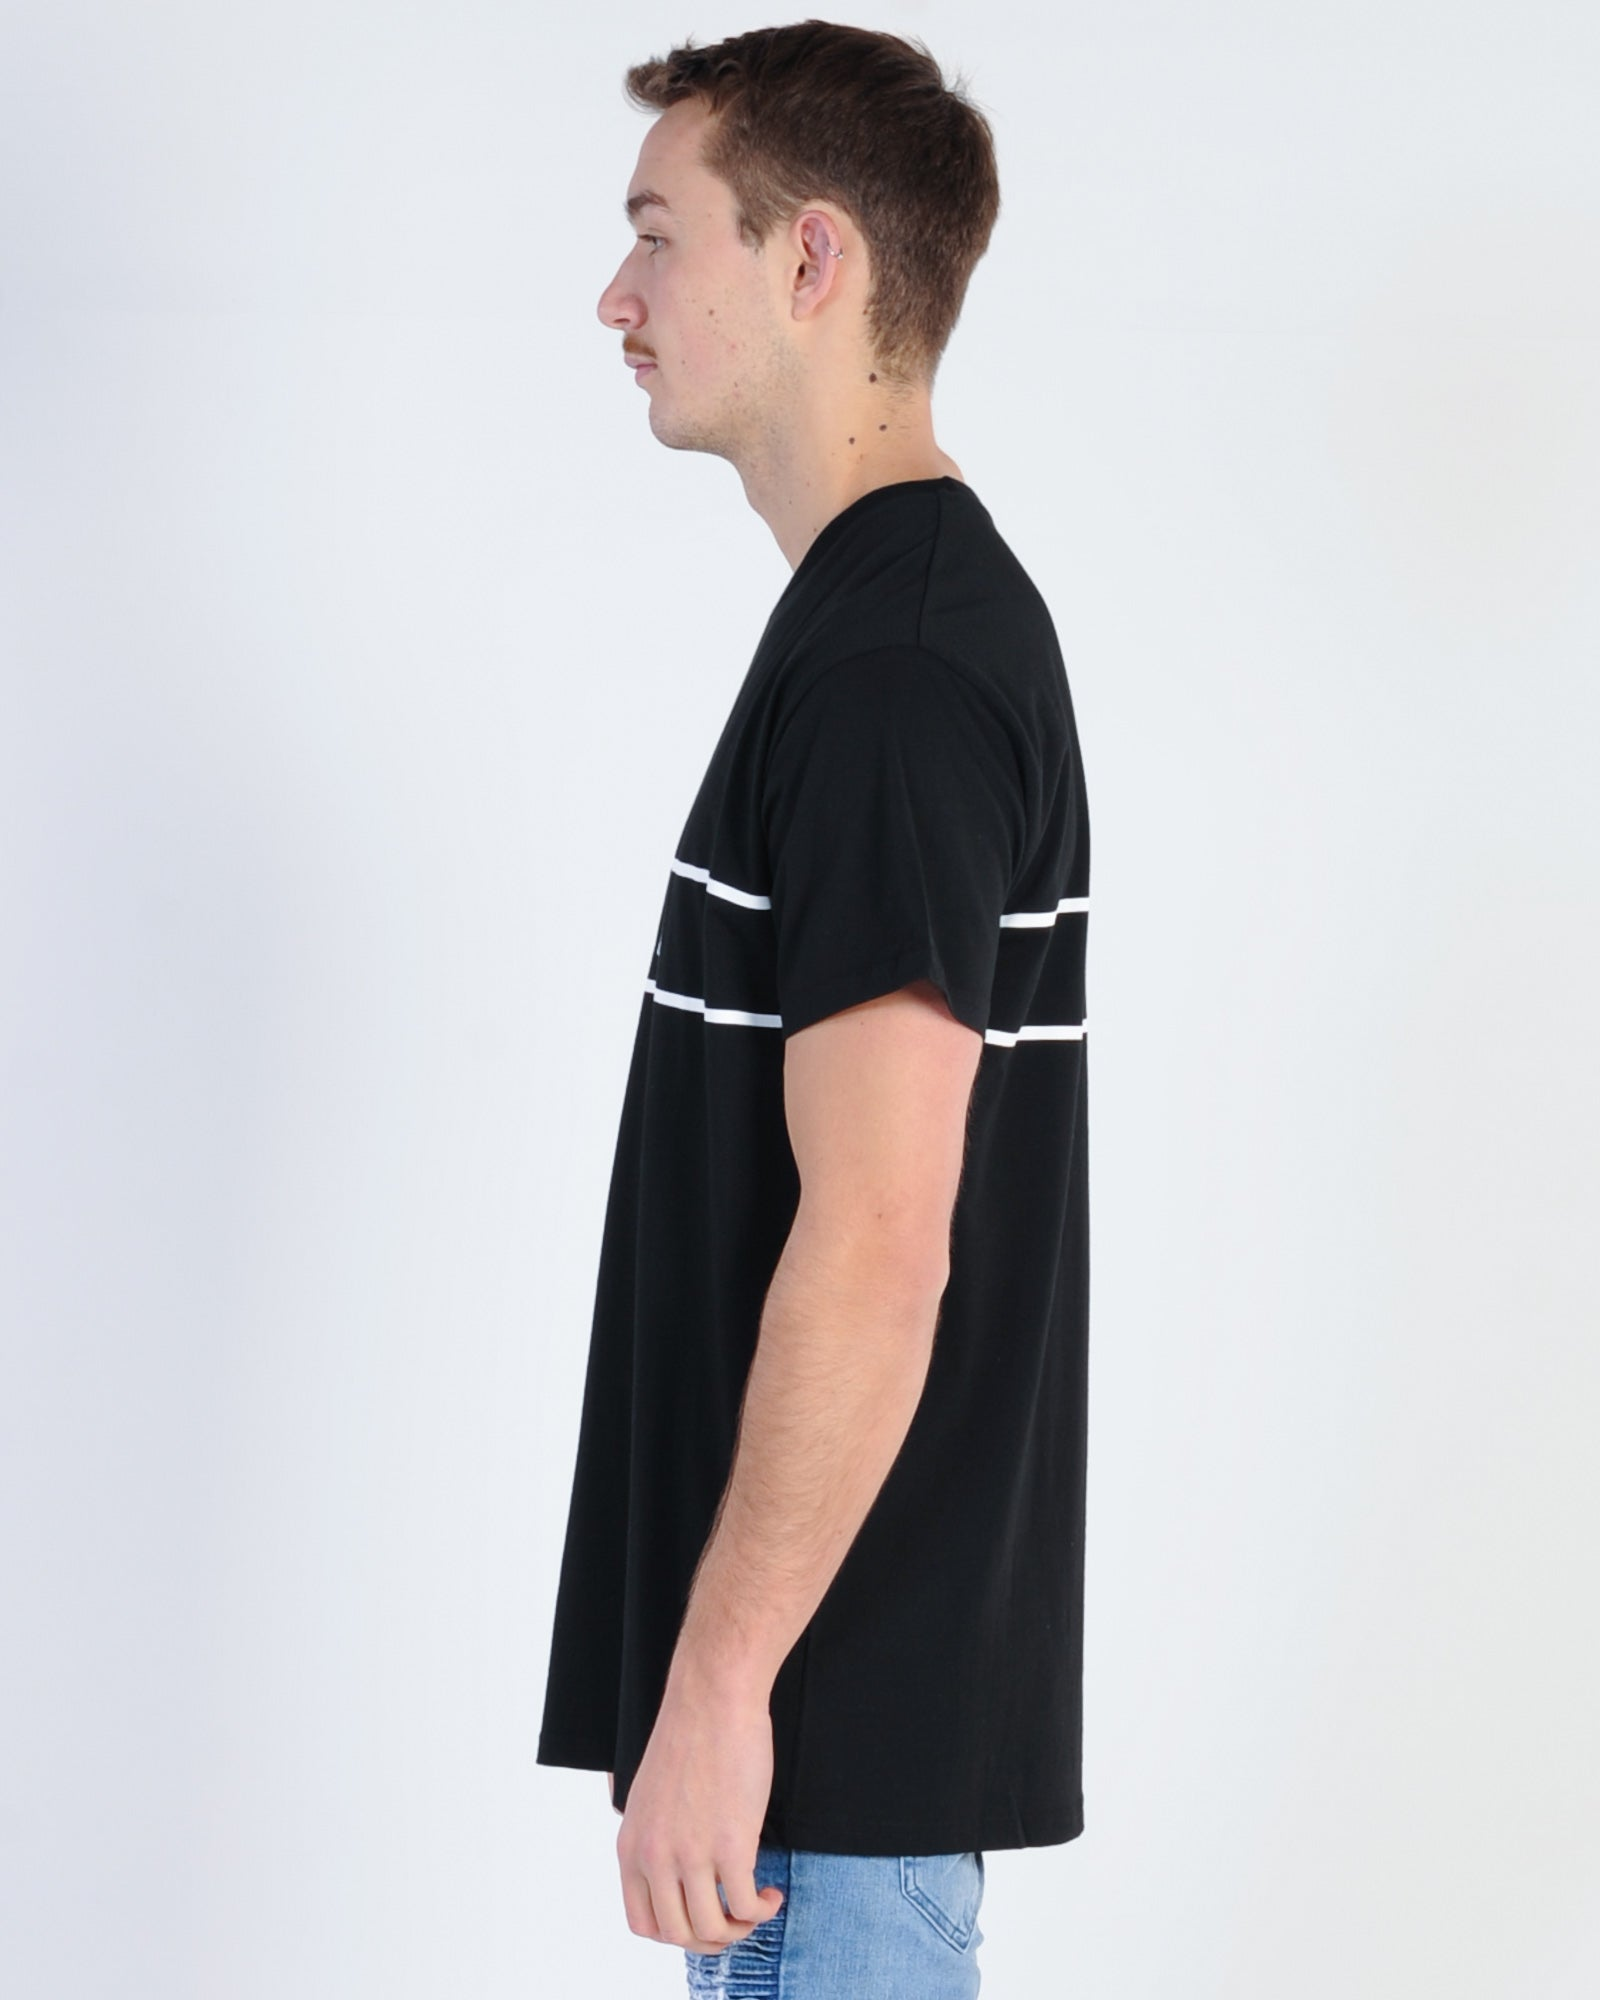 Wndrr Reverse Custom Fit Tee - Black